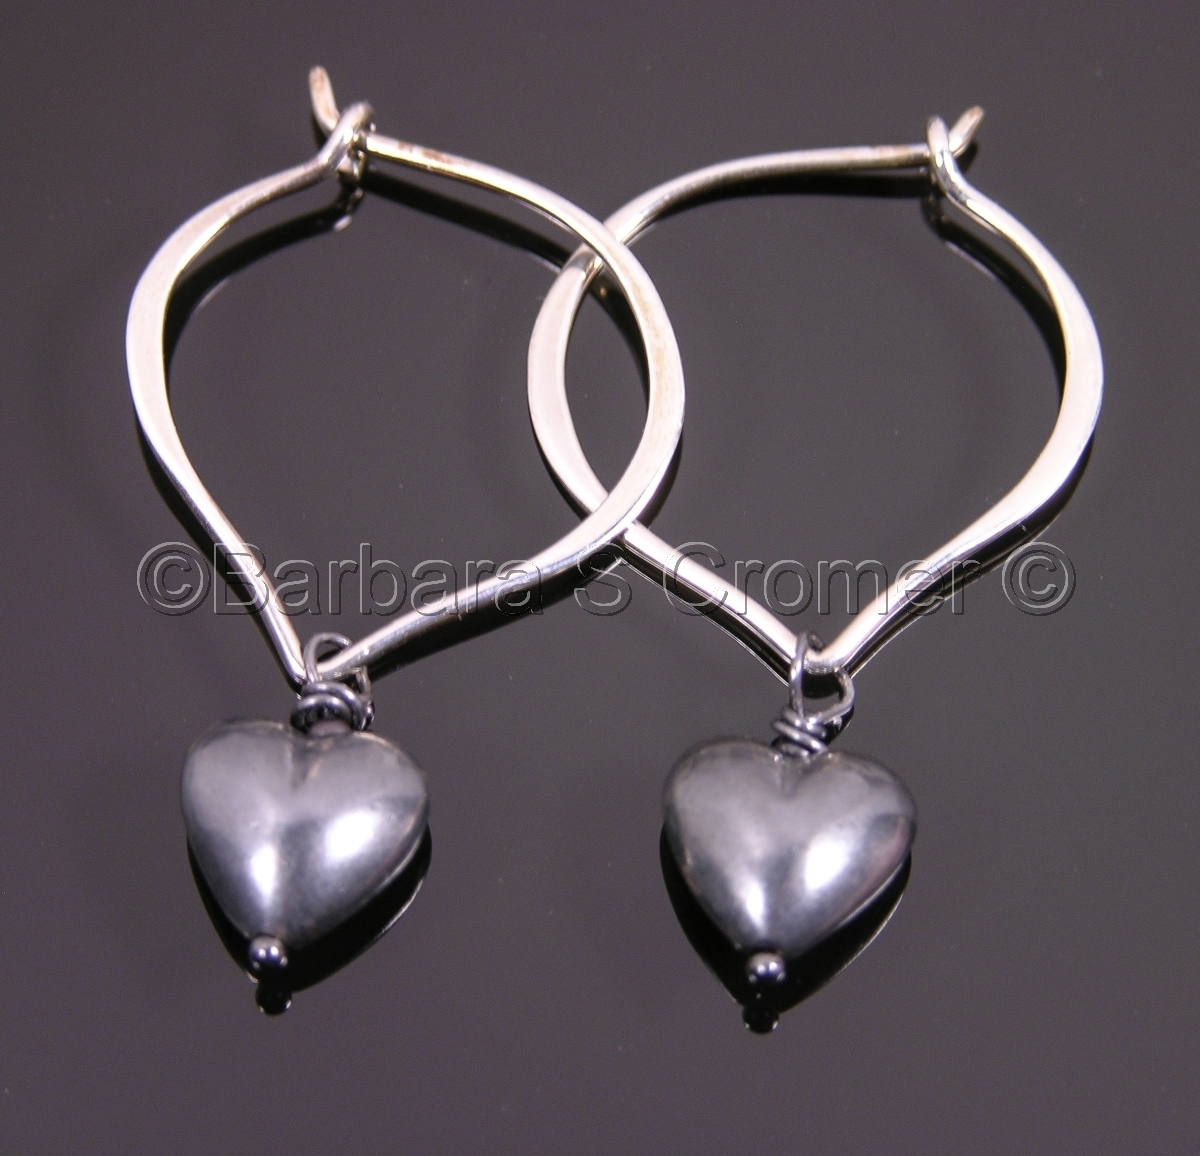 Satin black silver hearts, Sterling silver, lotus ear wires, 2 inches overall (large view)